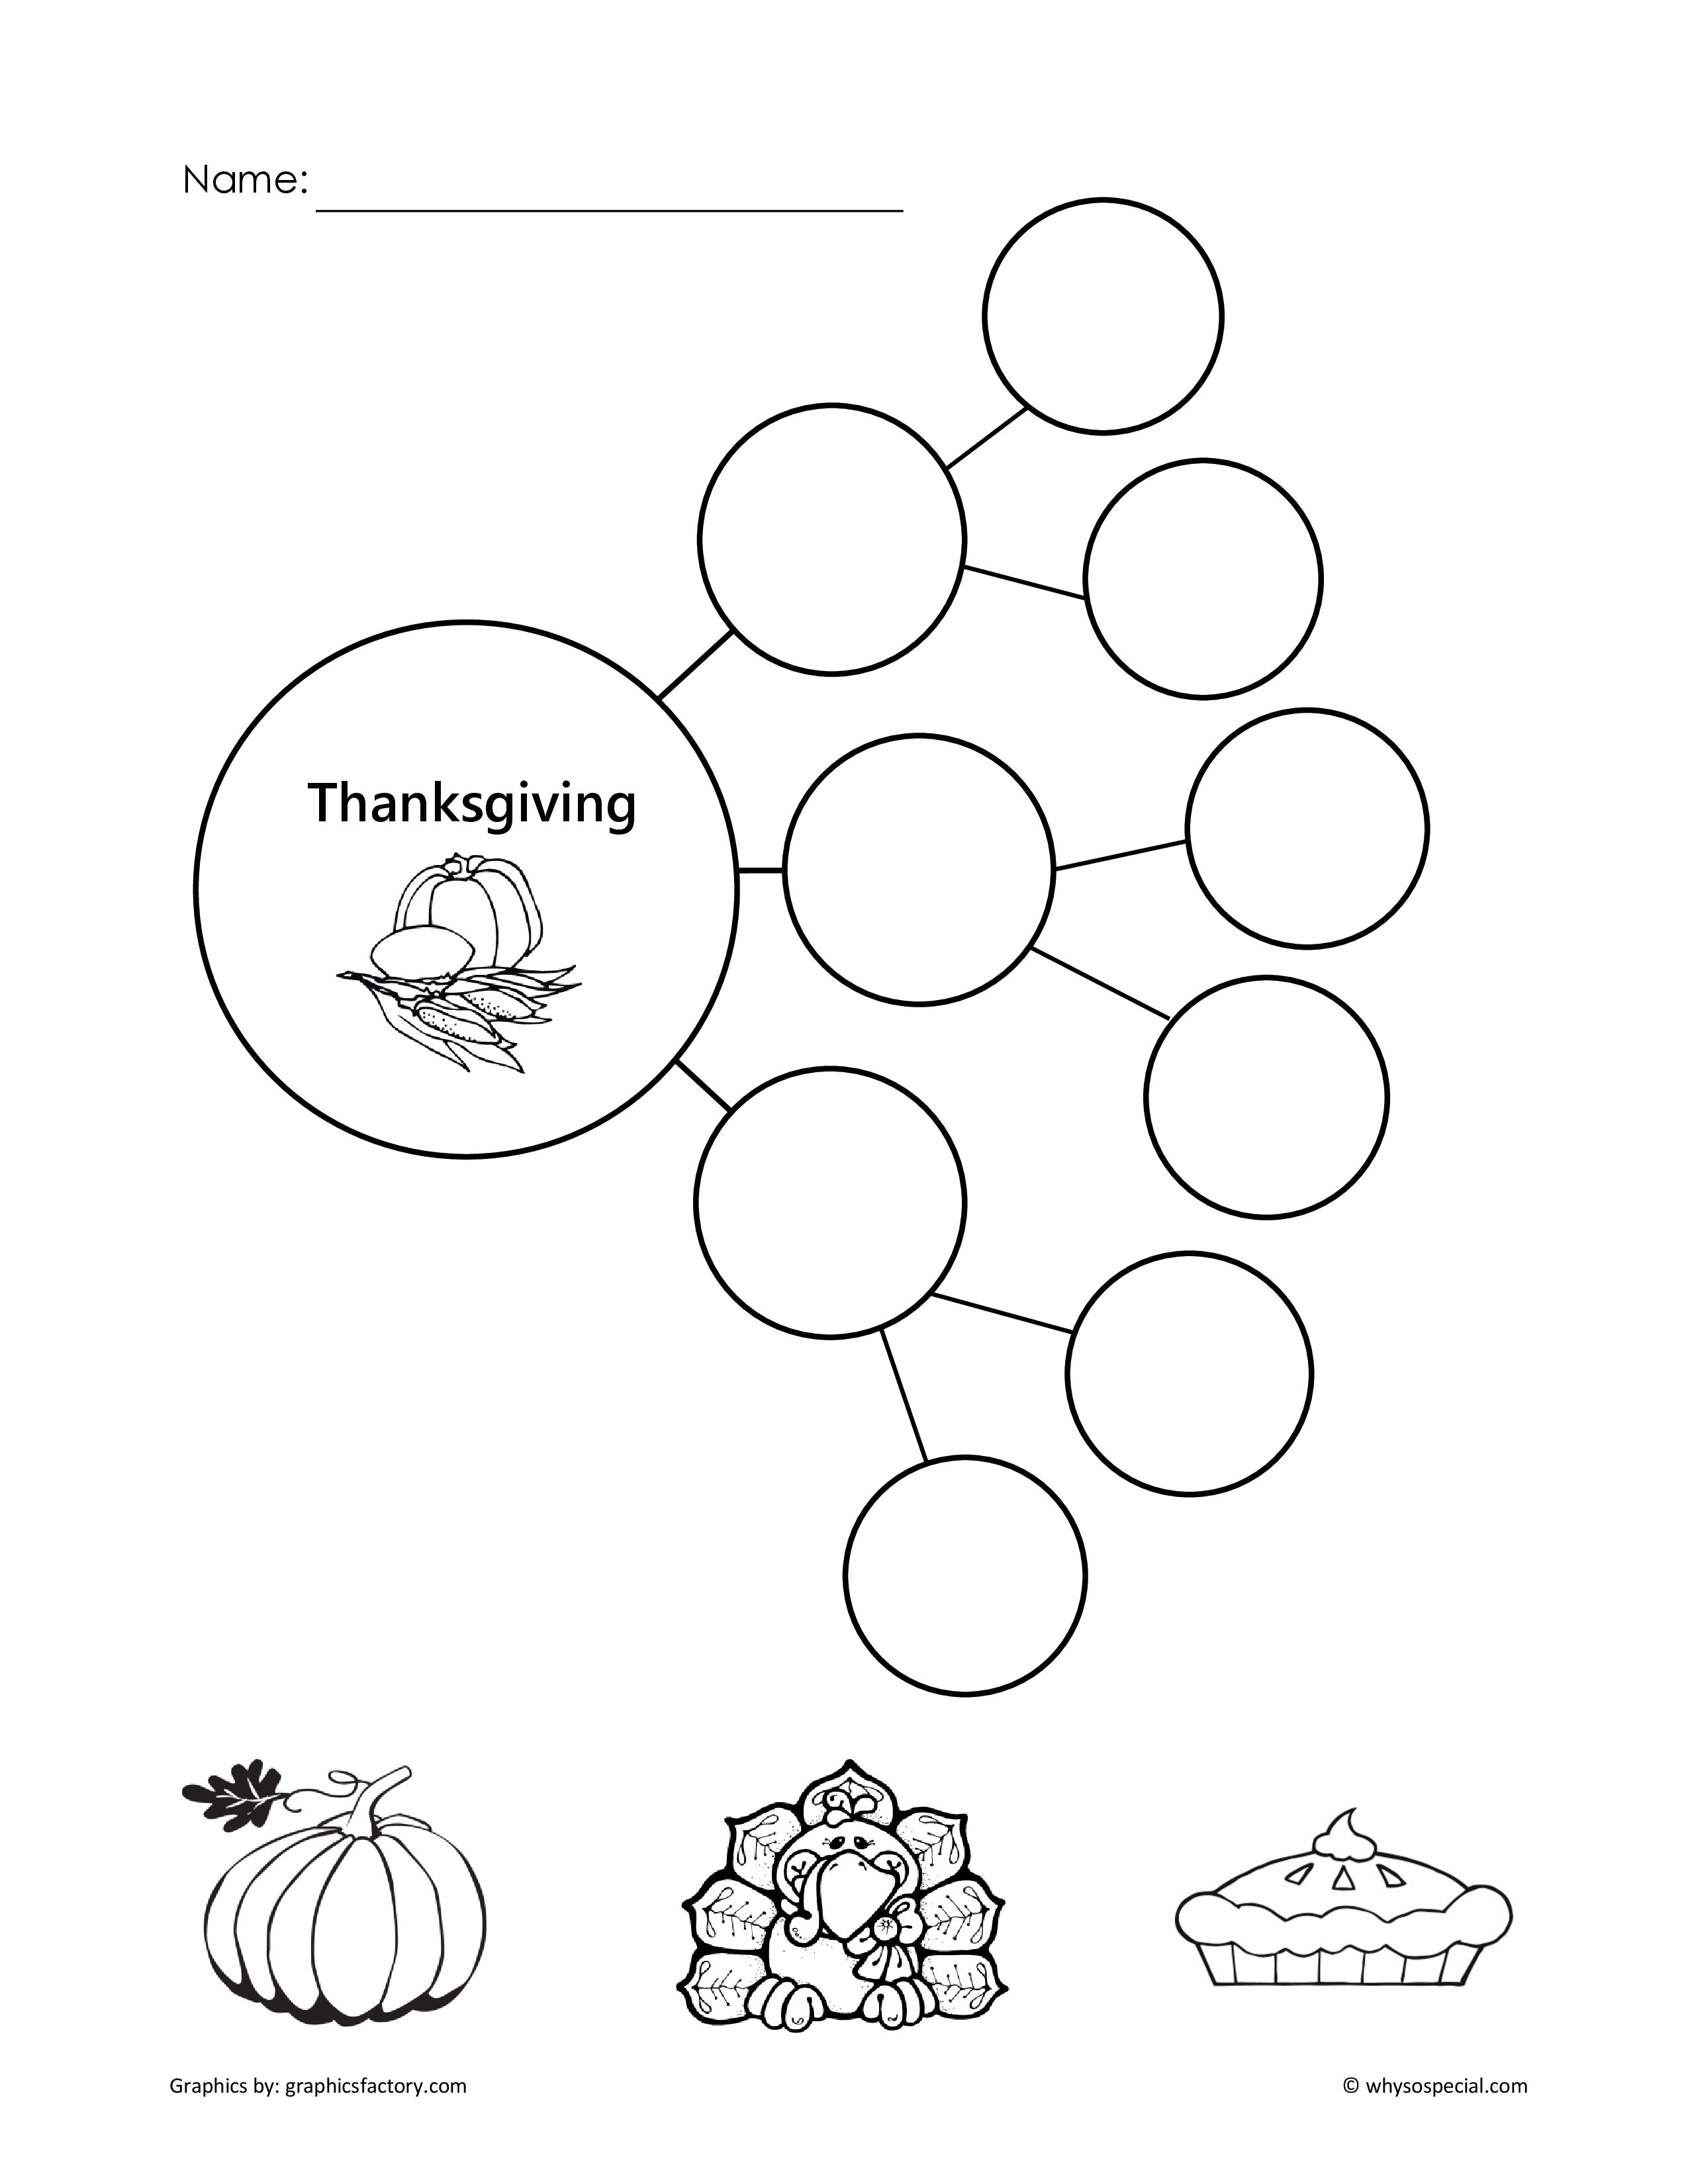 concept map for Thanksgiving | Carrie\'s WhySoSpecial Board | Pinterest